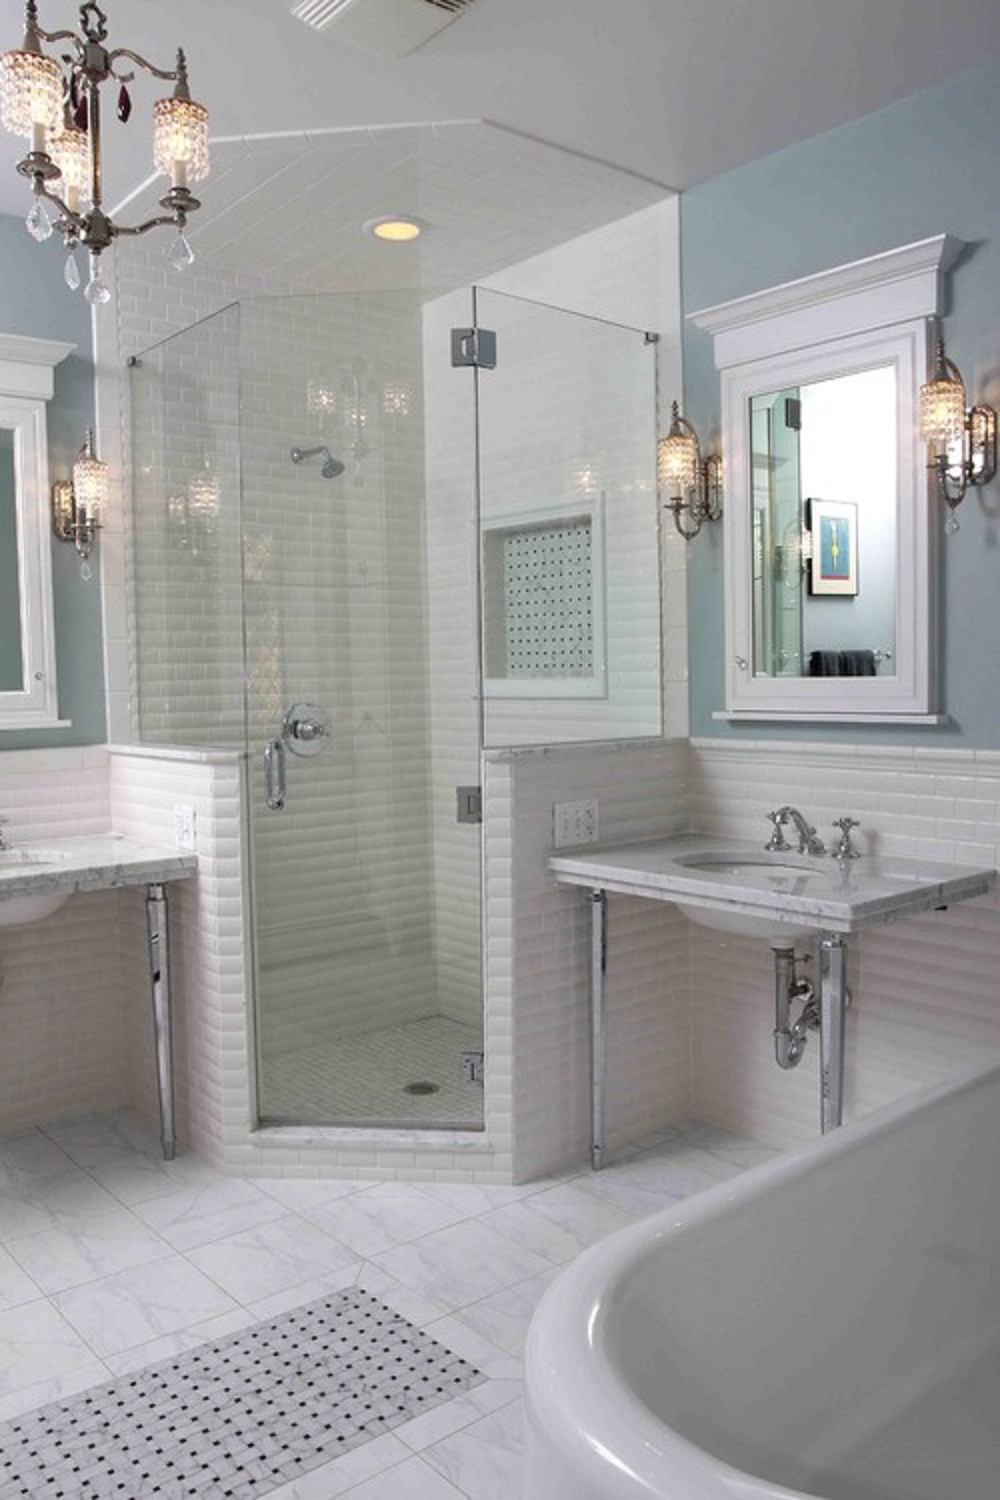 Vintage-Bathroom-Renovation-Ideas